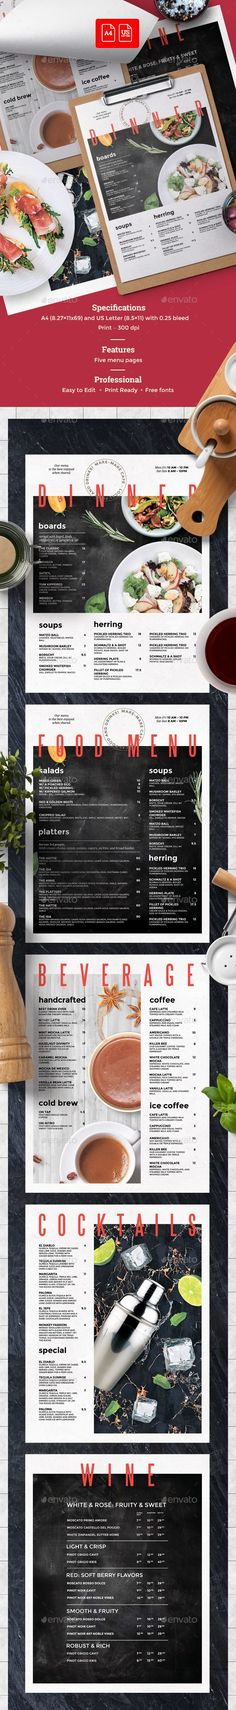 Restaurant Menu — Photoshop PSD #drink #coffee • Download ➝ https://graphicriver.net/item/restaurant-menu/20424494?ref=pxcr